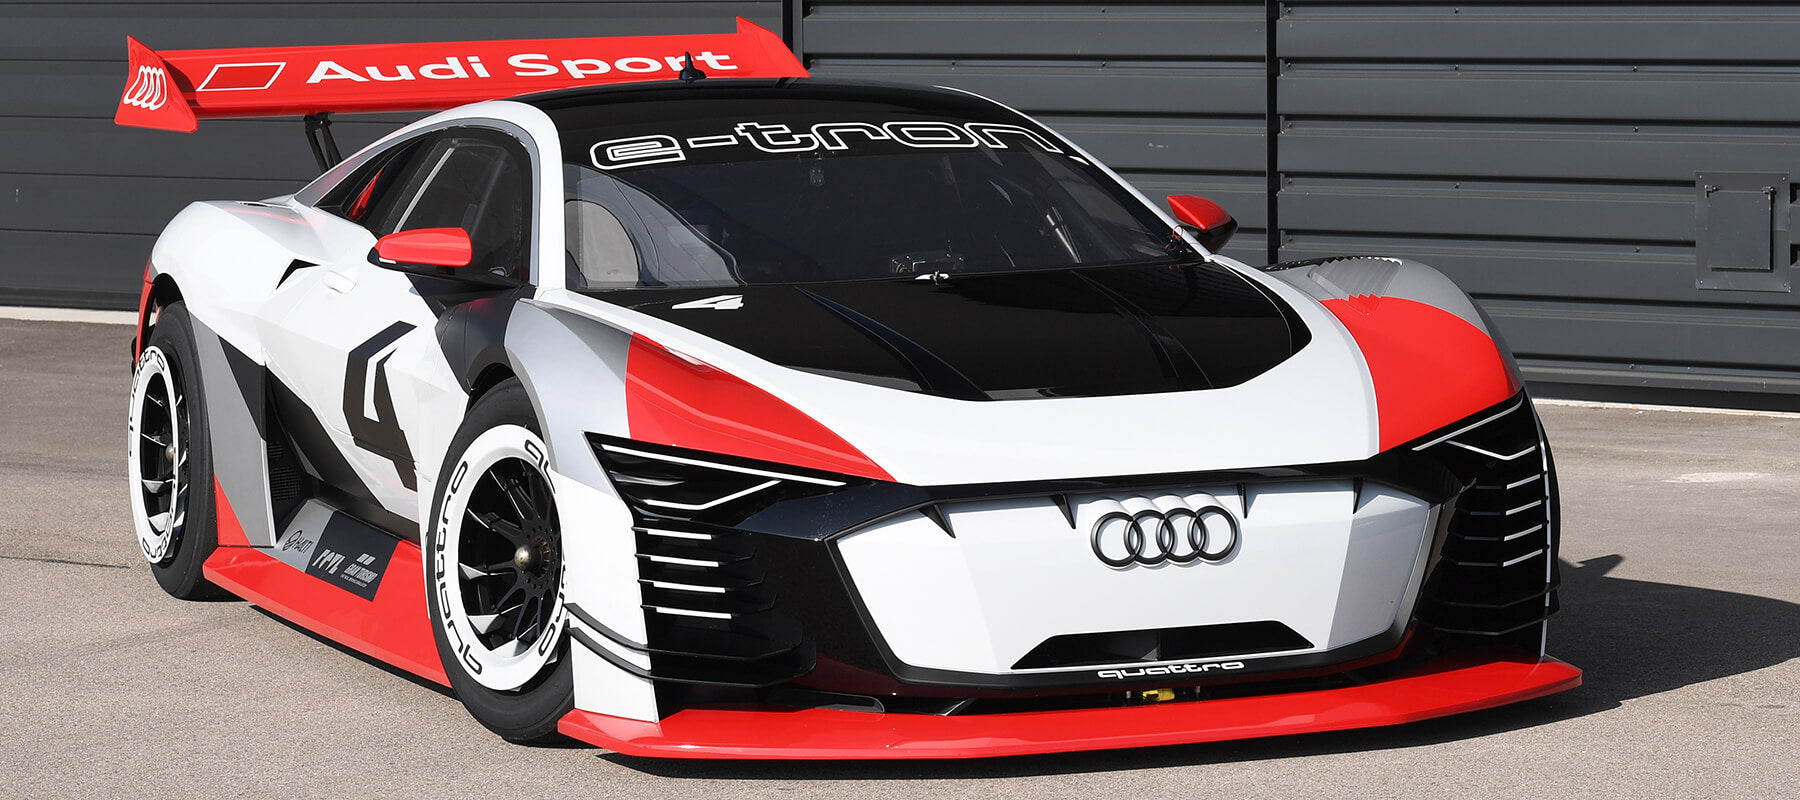 Halti in co-operation with Audi Sport - Audi e-tron Vision Gran Turismo